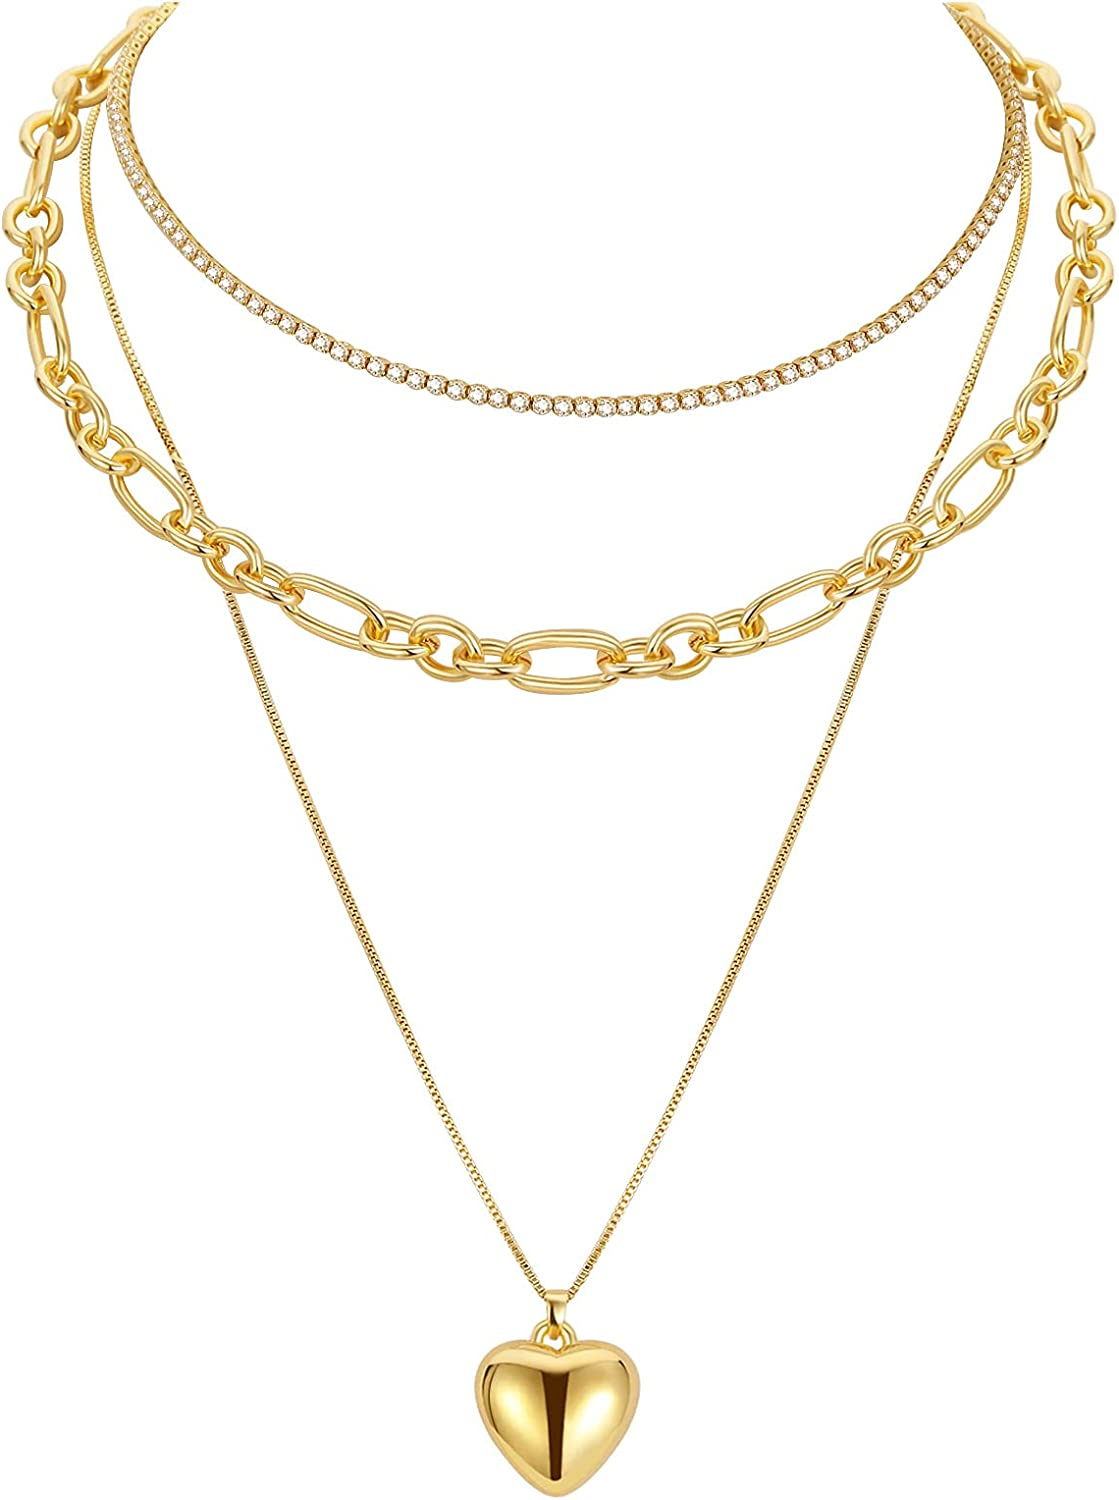 Layered Necklace For Women Gold Chain Pendant Necklace Dainty Chunky Chain Necklace & Diamond-Cut Chain & Heart Gold Necklace 3 Layer Adjustable Stacked Long Y2k Trendy Jewelry